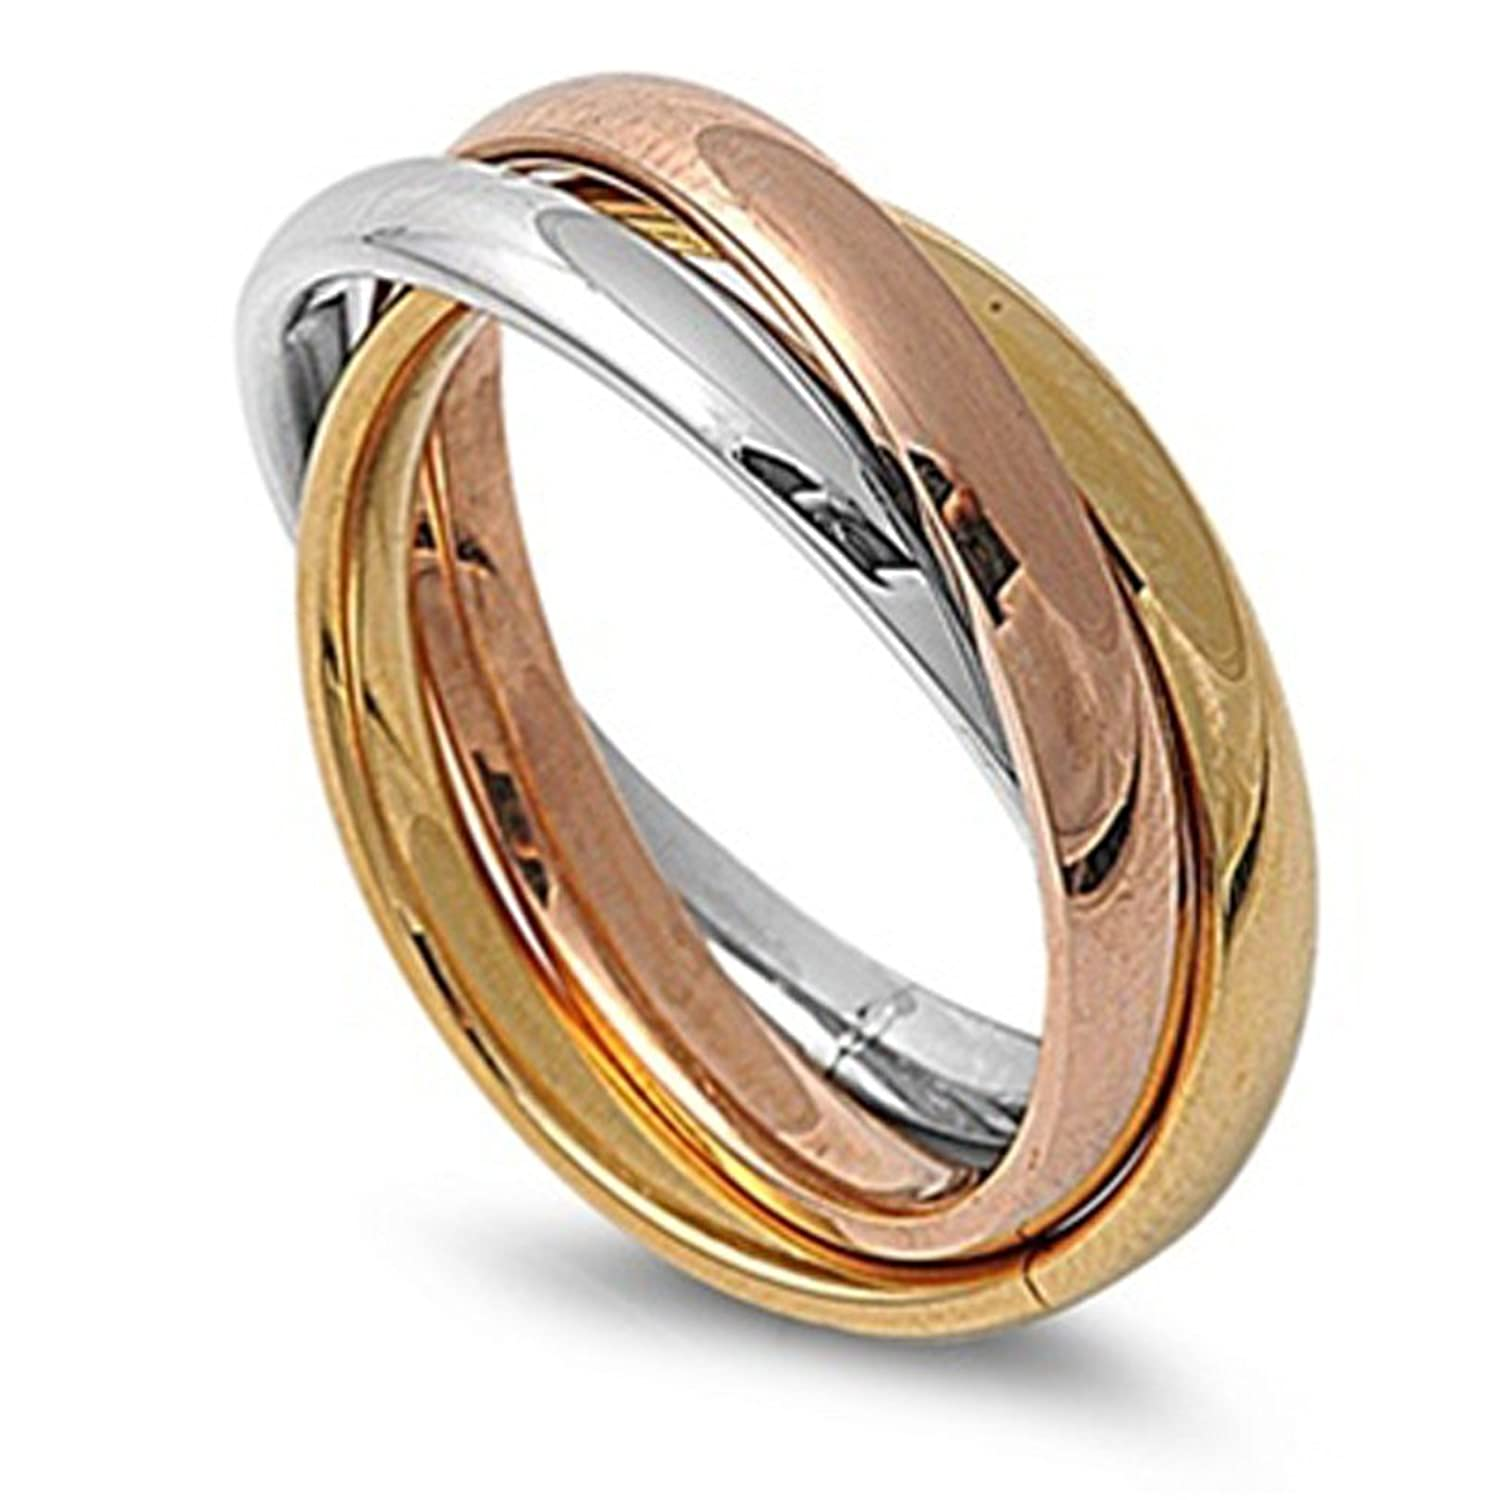 bar goldclear kors product in rings tri jewelry pink ring pave open gallery rose stack lyst michael normal